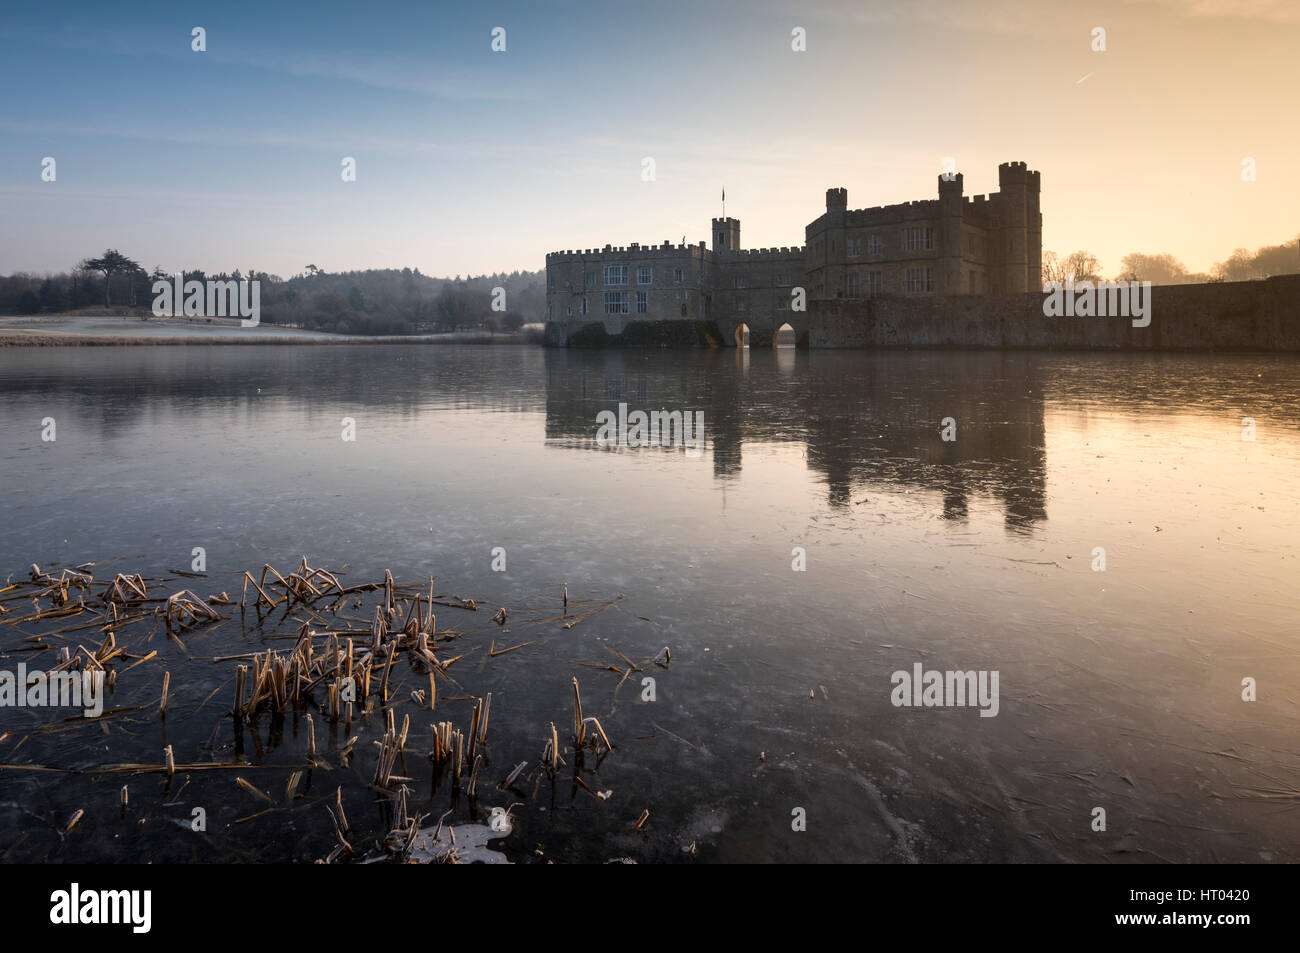 A Winter's morning at Leeds Castle, Kent. - Stock Image